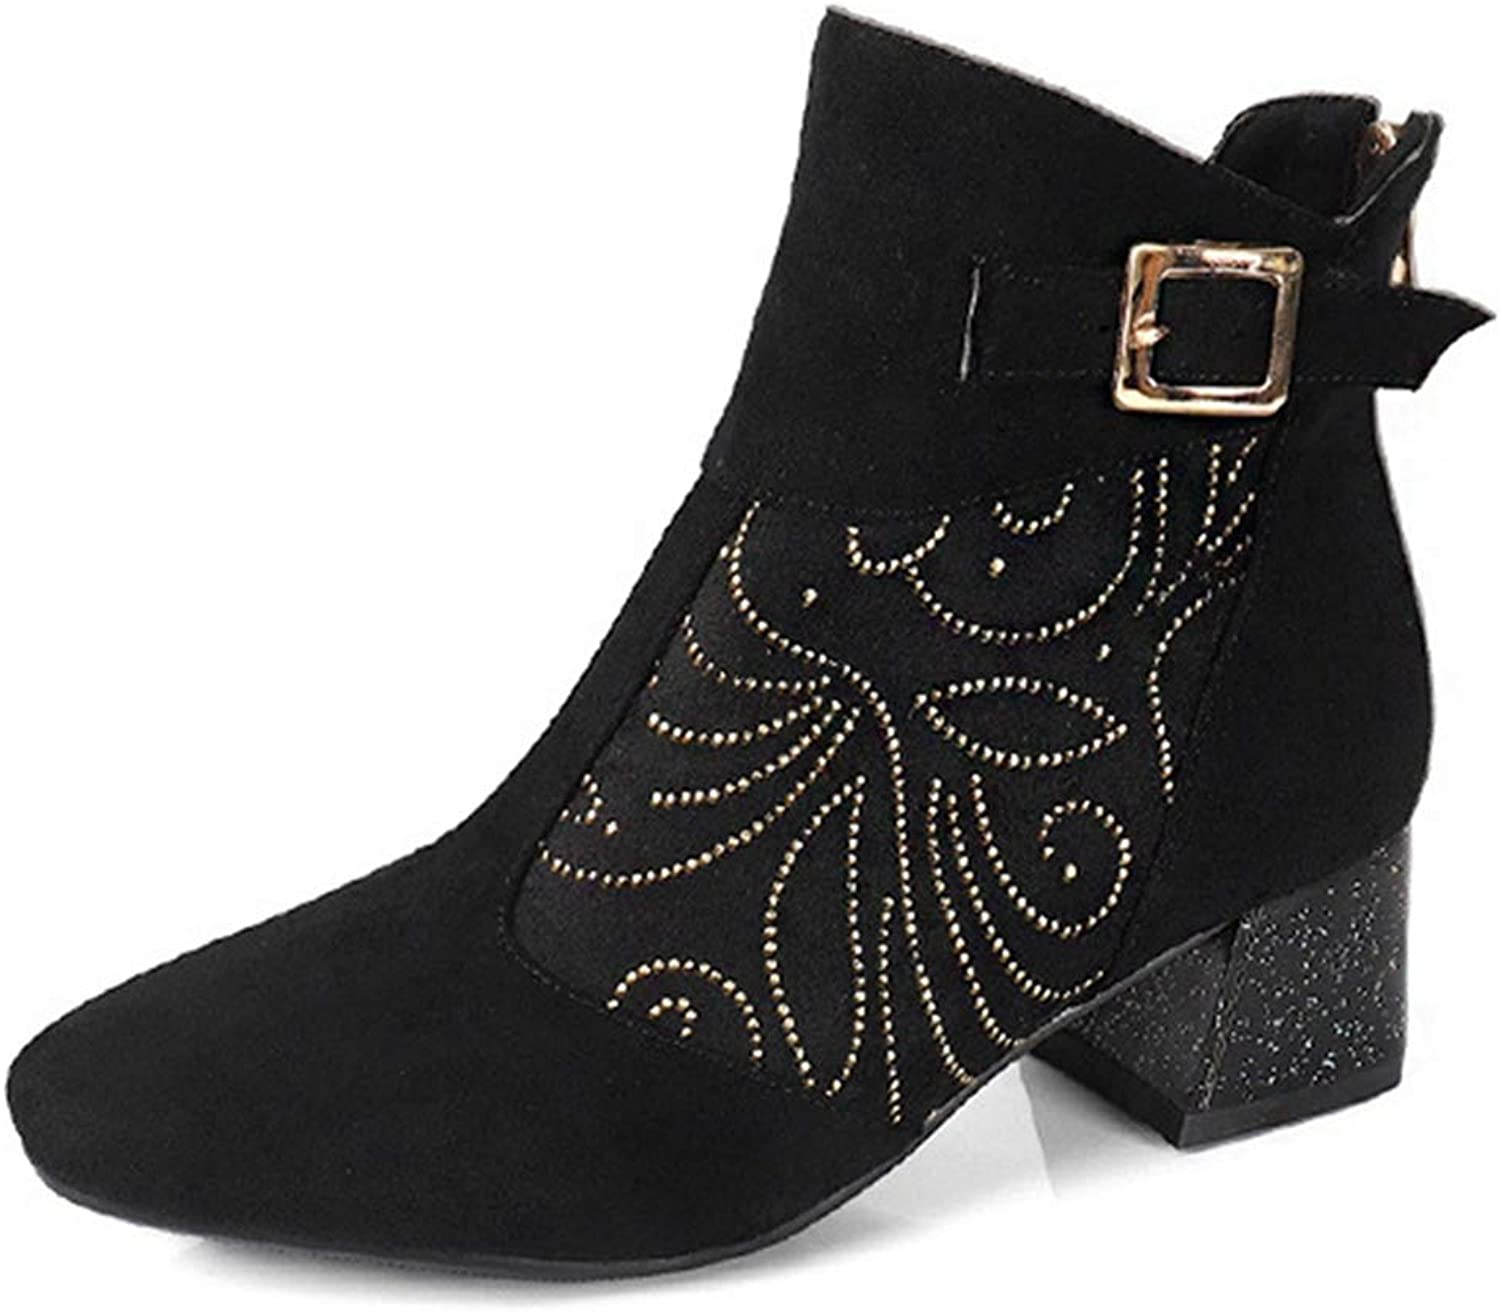 GIY Women's Close Toe Buckle Ankle Boots Retro Mid Heel Bootie Back Zip Up Studded Rhinestone Short Boot